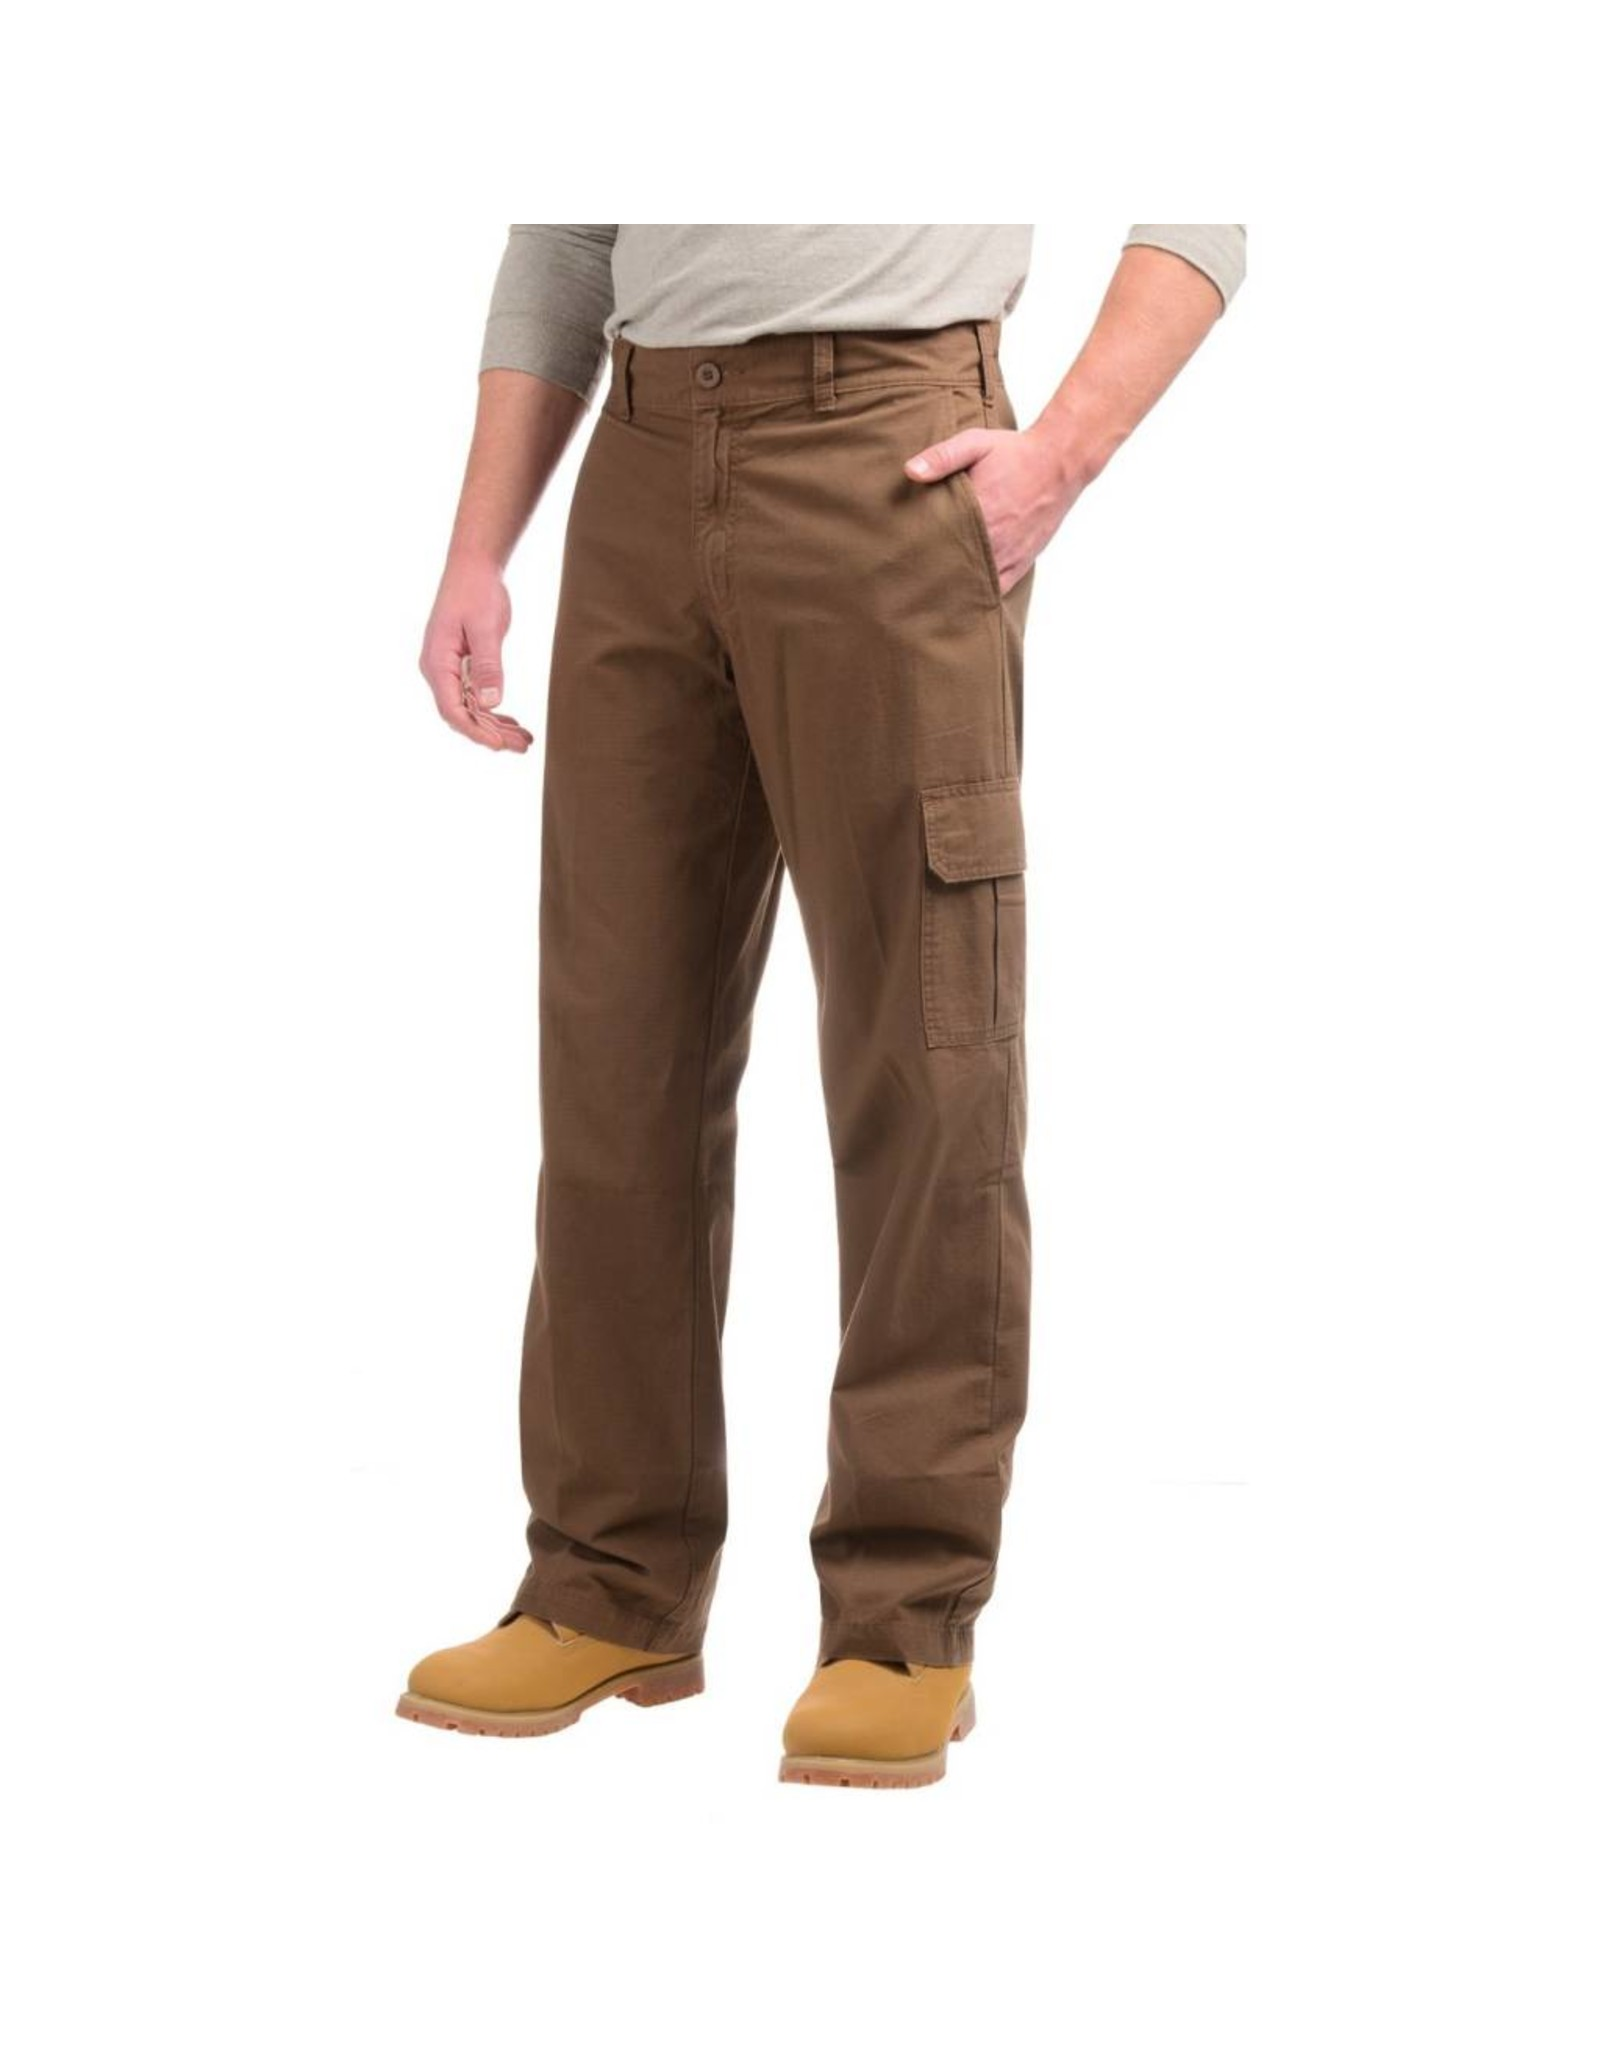 DICKIES Lightweight Cotton Ripstop Cargo Pant WP351RTB